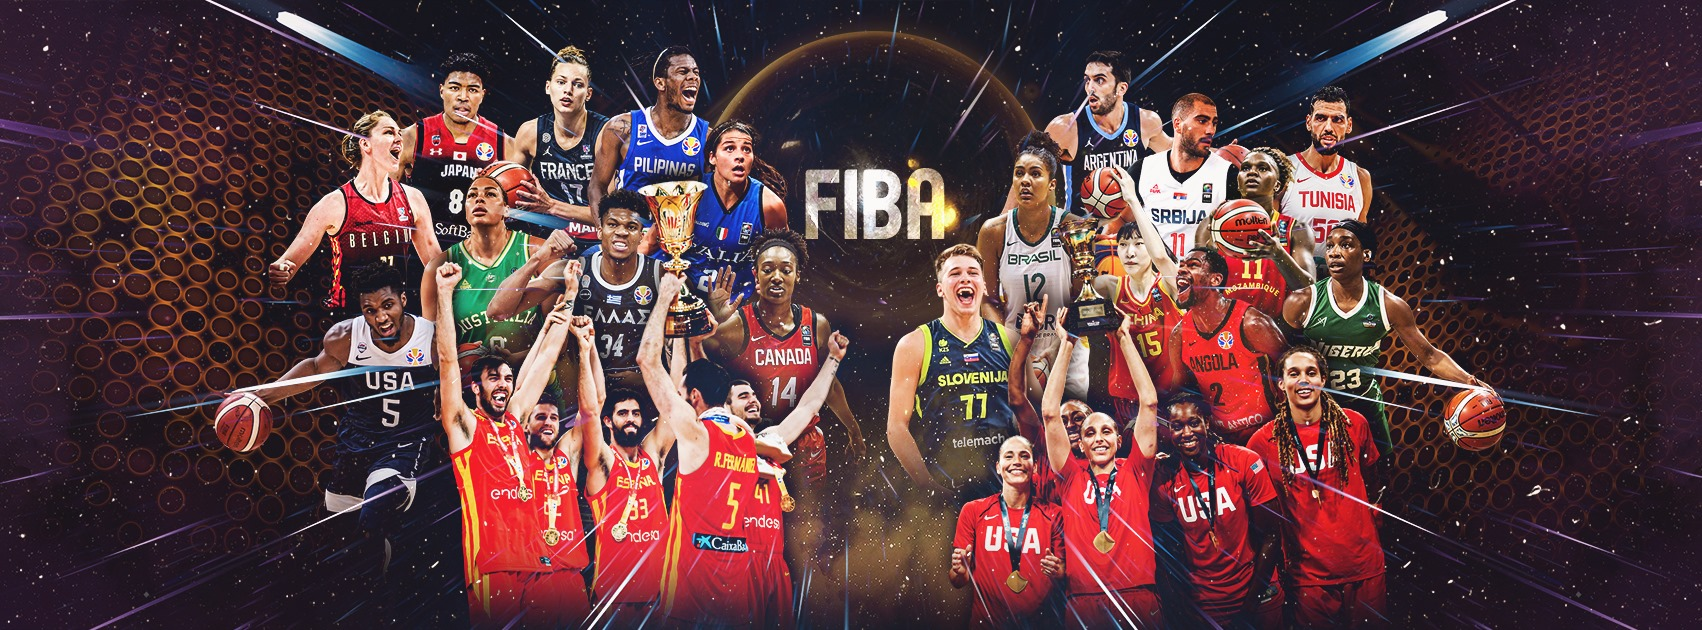 fiba-world-cup-2023-se-va-desfasura-intre-25-august-si-10-septembrie